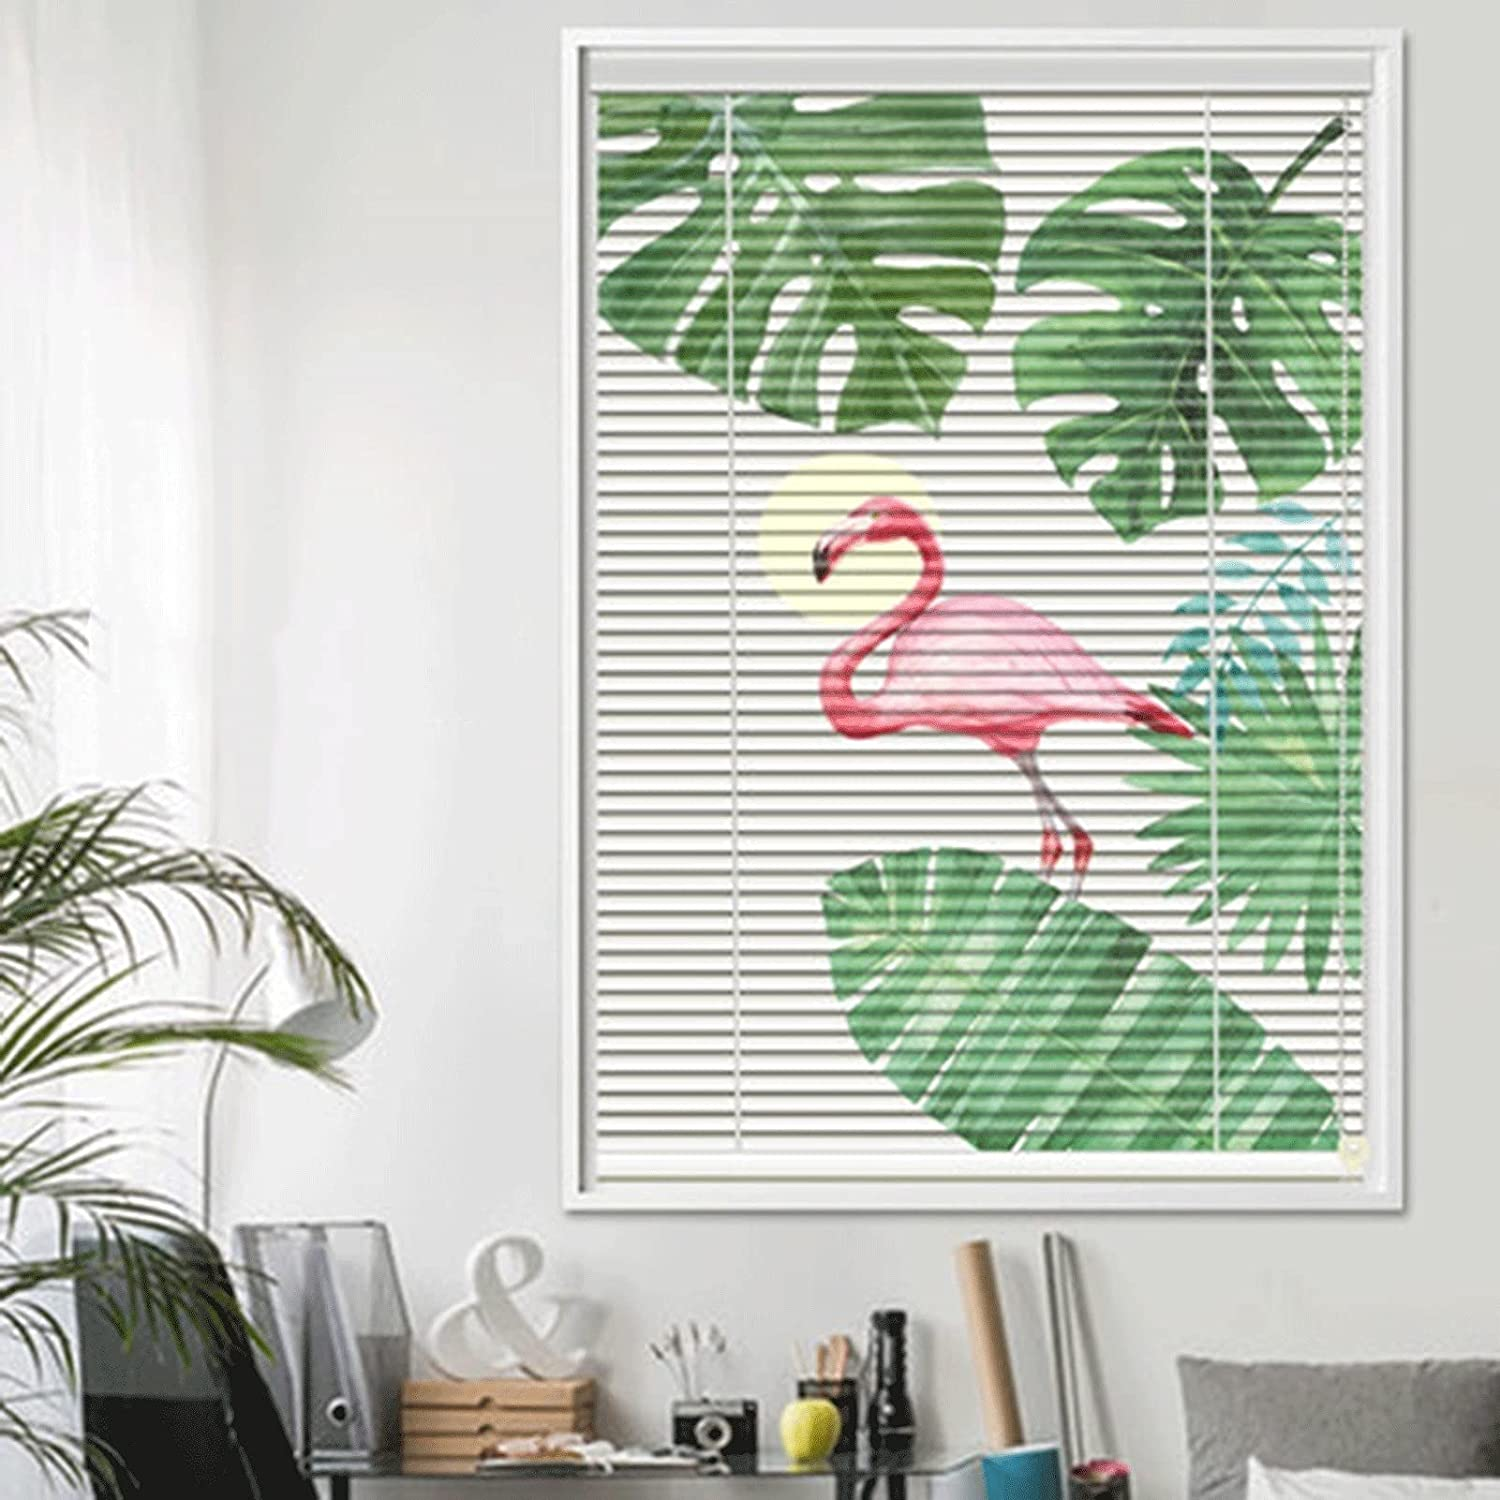 small window shade Las Vegas Mall Cute Animal Household Pattern Blinds Challenge the lowest price Living